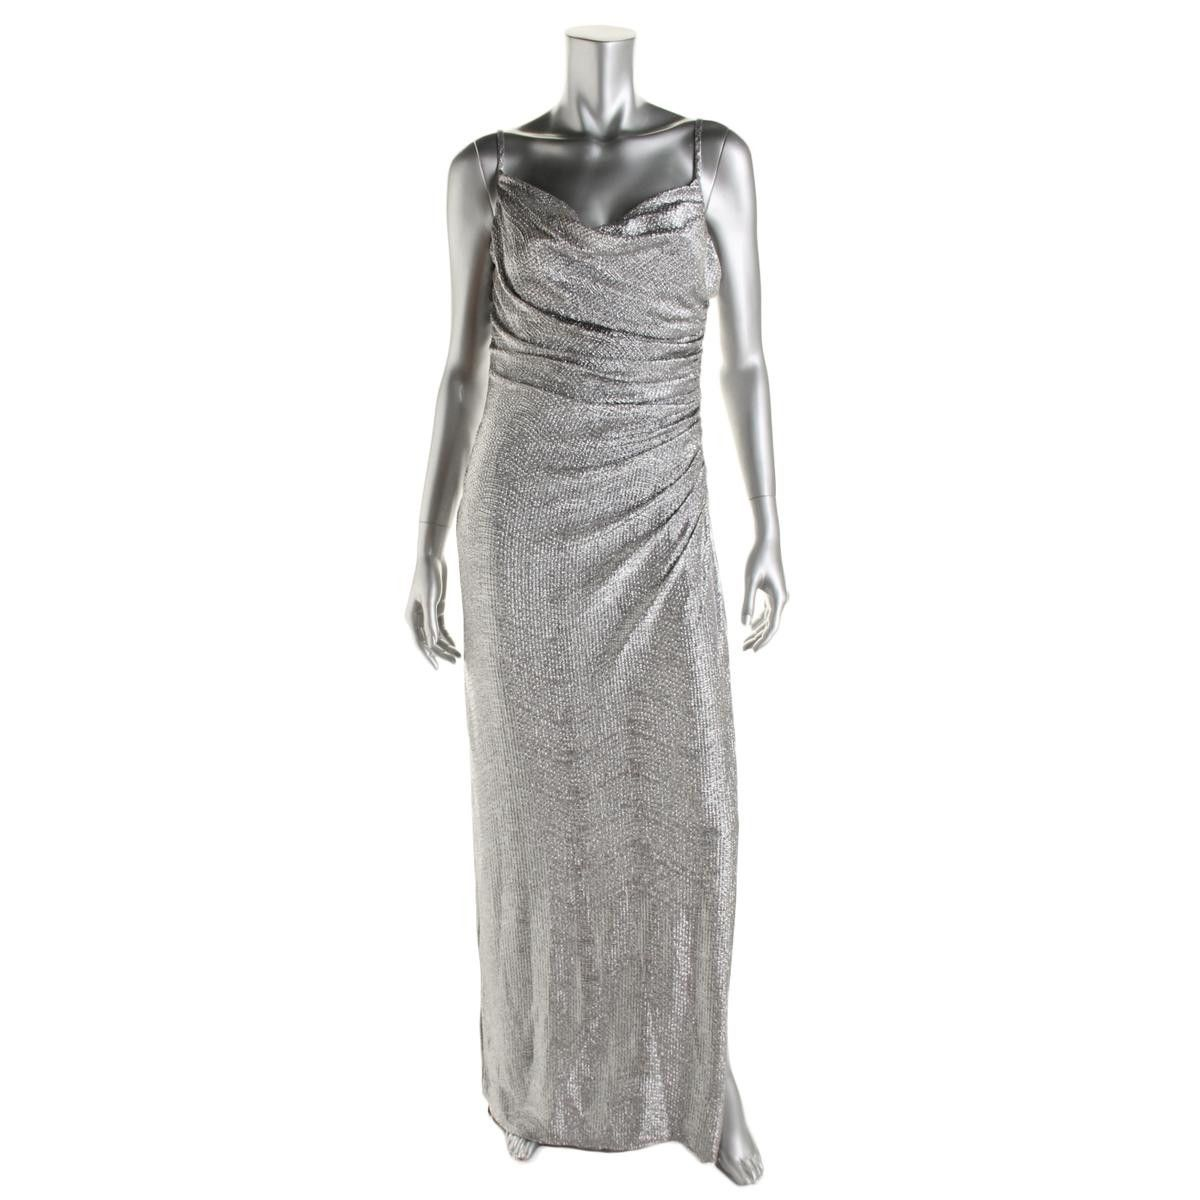 d19f999212 Laundry by Shelli Segal Womens Metallic Ruched Evening Dress ...